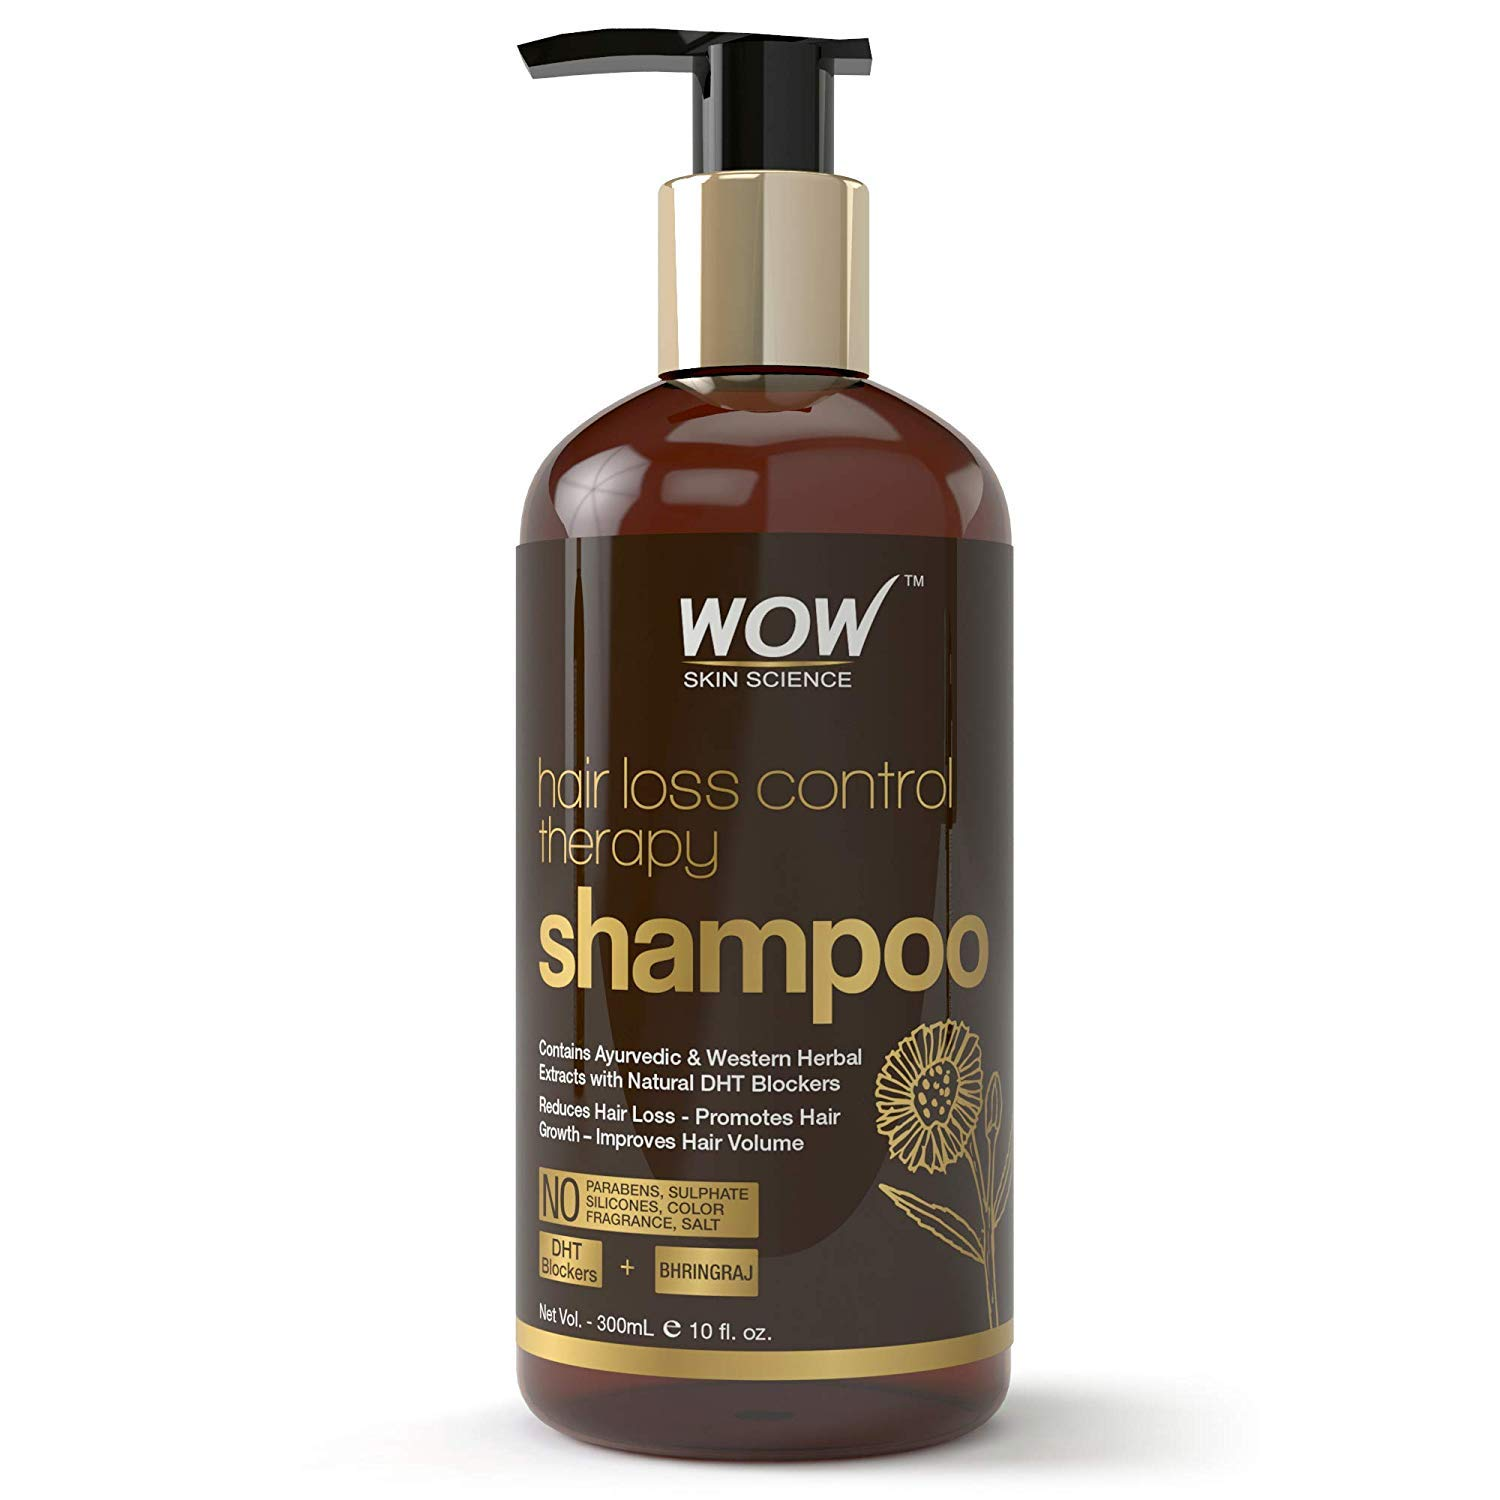 WOW Skin Science Hair Loss Control Therapy Shampoo -